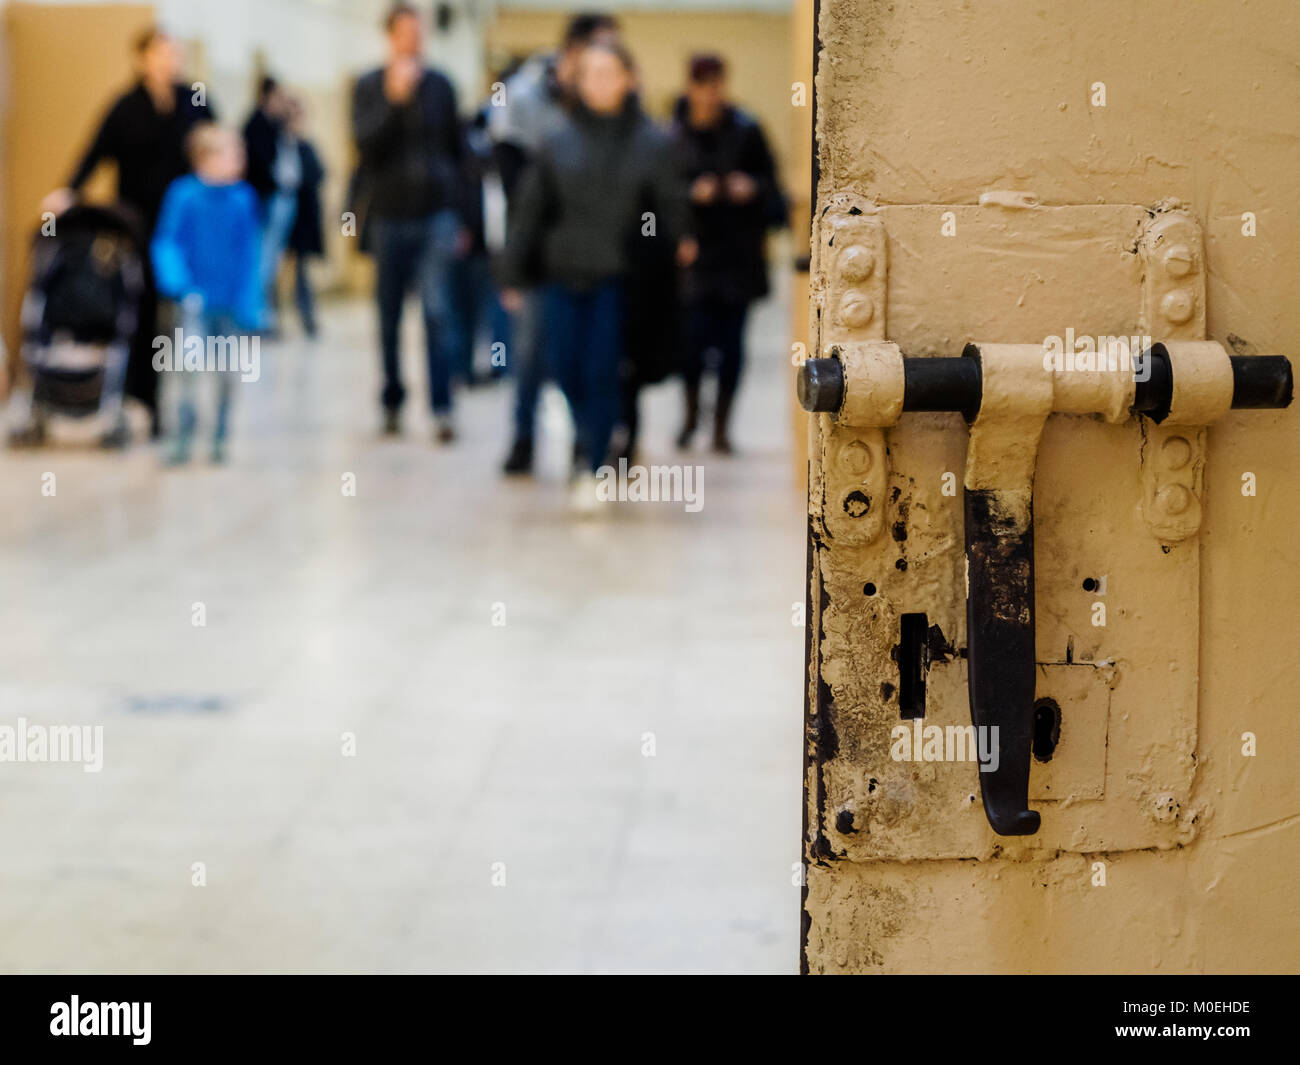 """Barcelona, Spain. 21st Jan, 2018. The visitors could walk the galleries of the old prison """"La Model"""" in Barcelona, Stock Photo"""